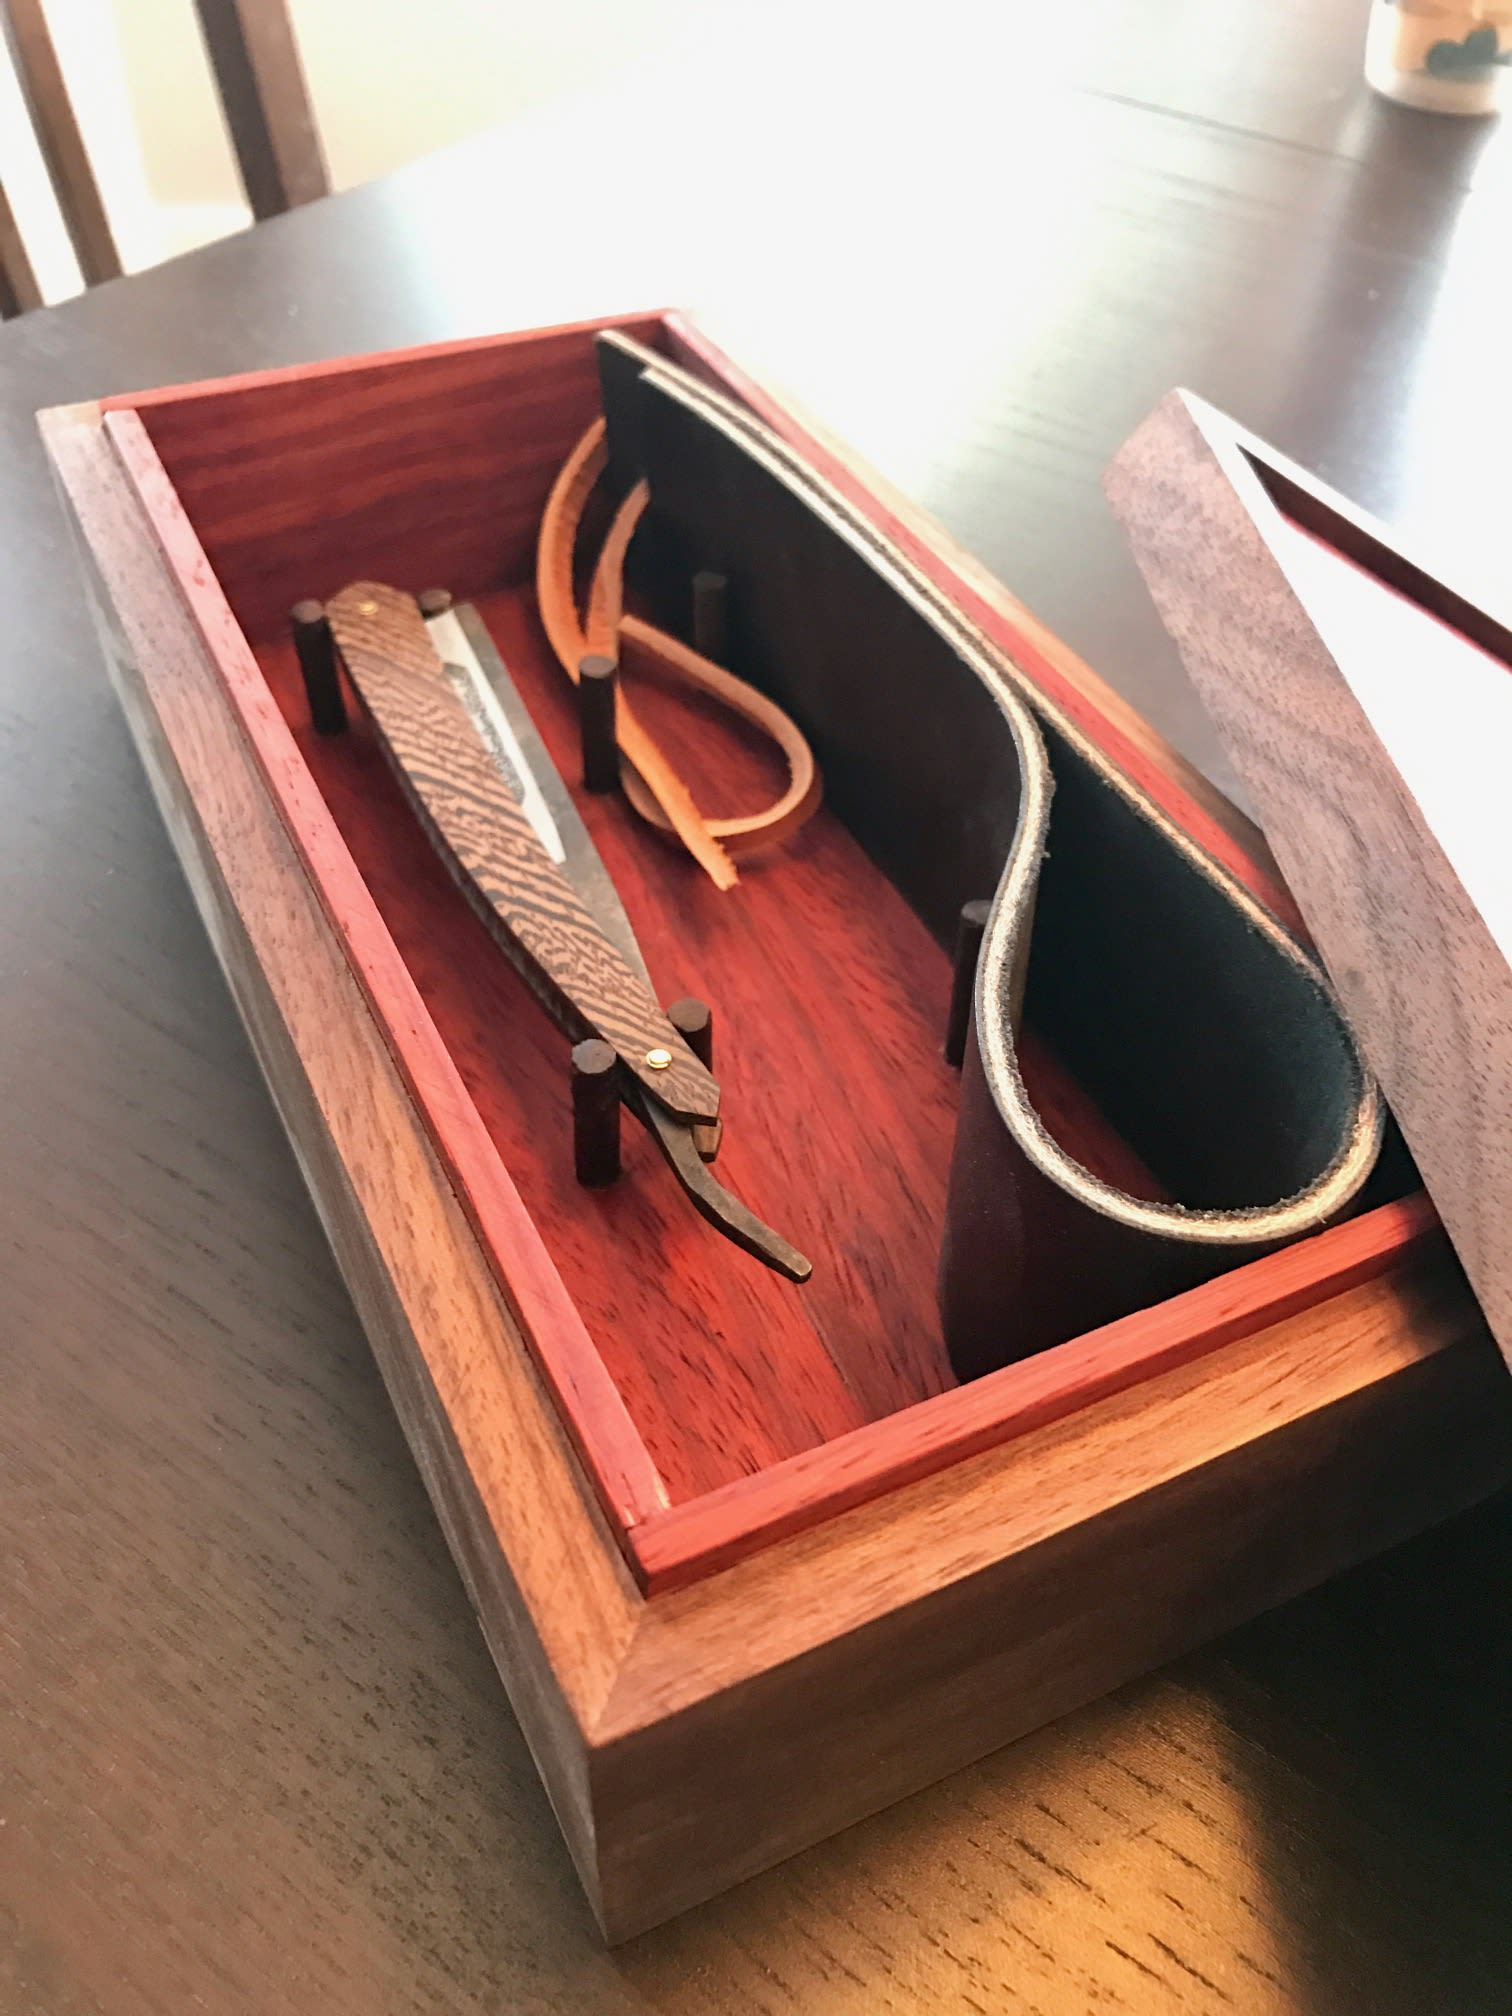 Furniture by Cask Woodworking seen at Private Residence, Edmonton, Canada, Edmonton - Straight Razor Keepsake Box